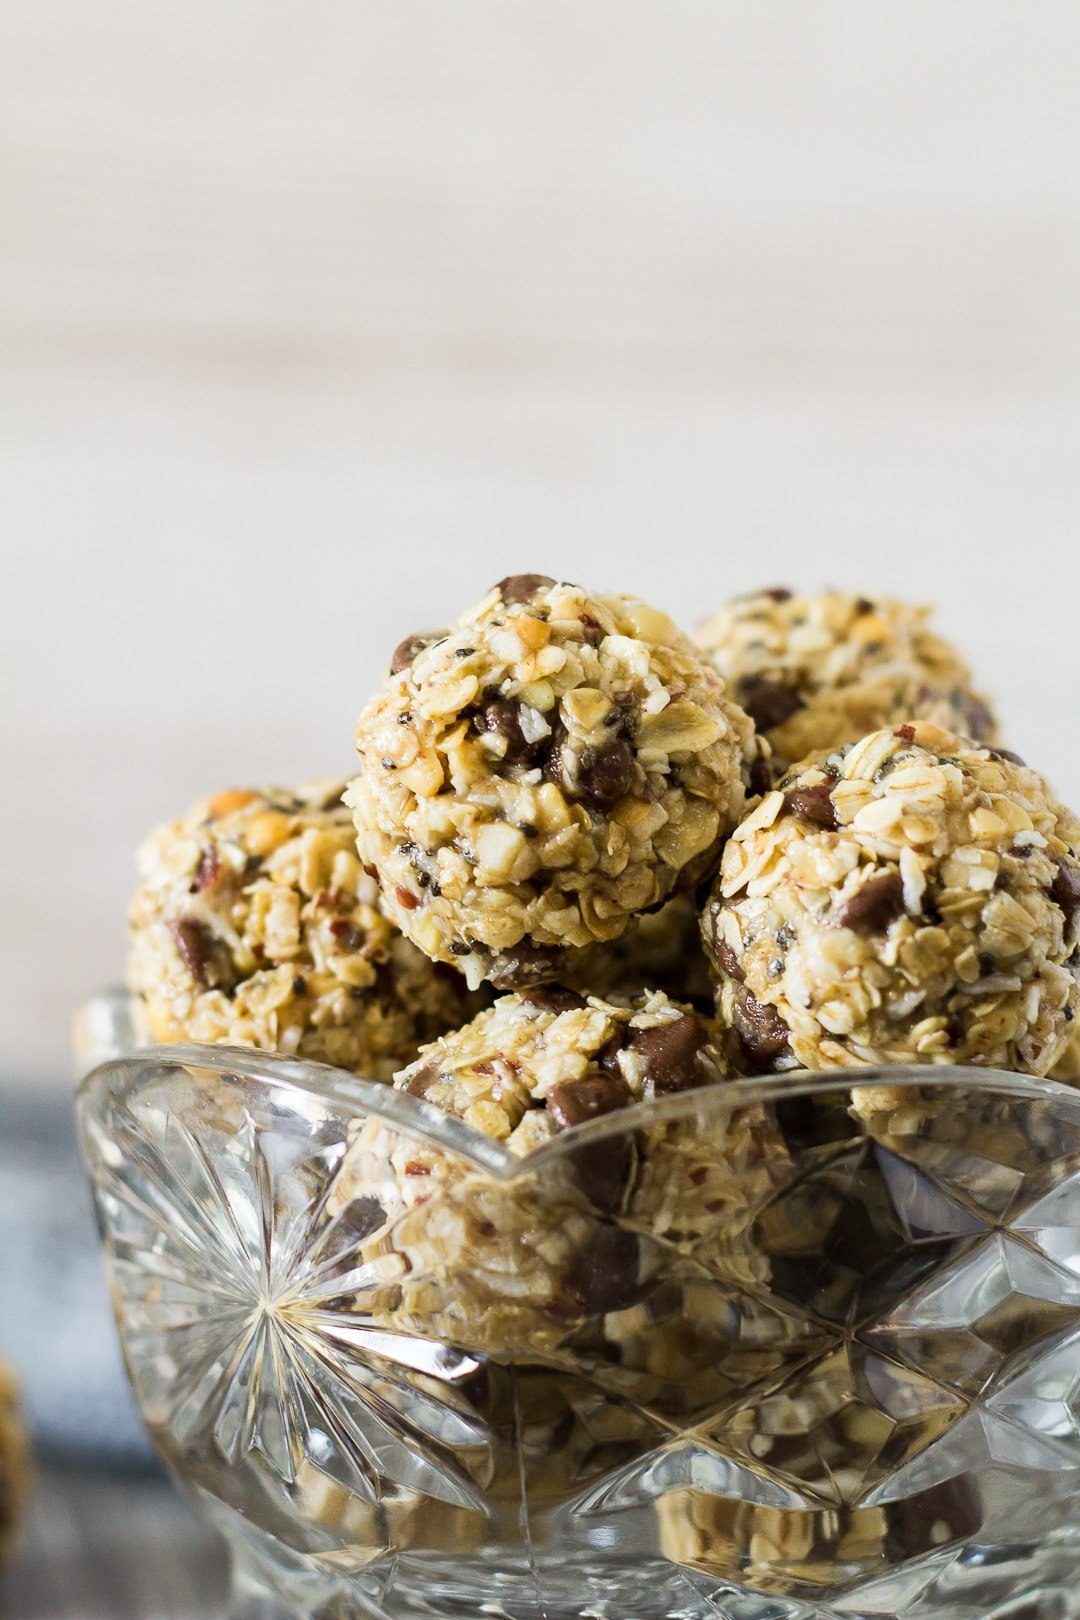 A close-up of No-Bake Peanut Butter Coconut Energy Bites in a small glass bowl.